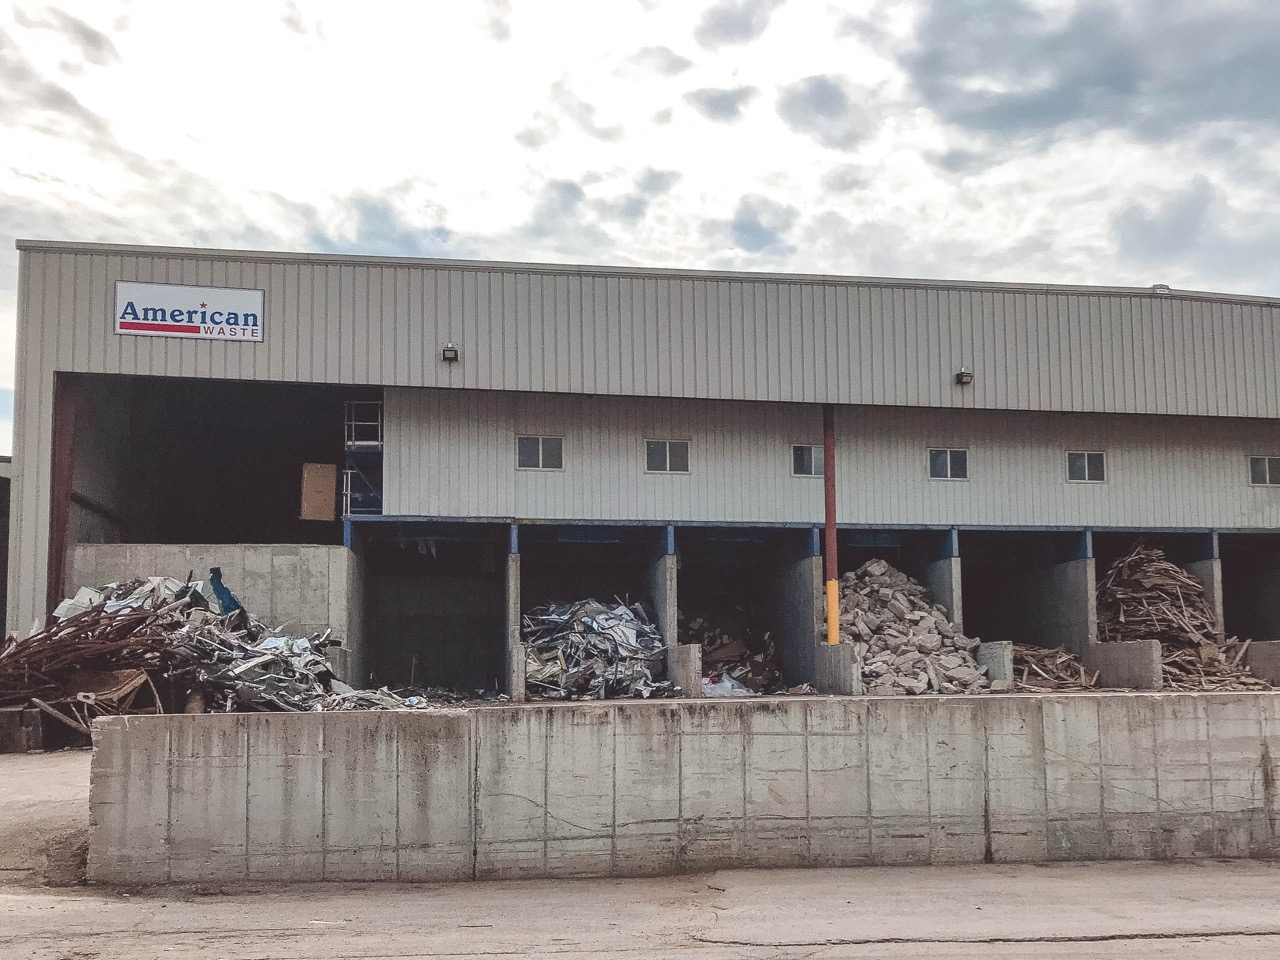 Construction & Demolition Recycling Facility, Kalkaska MI